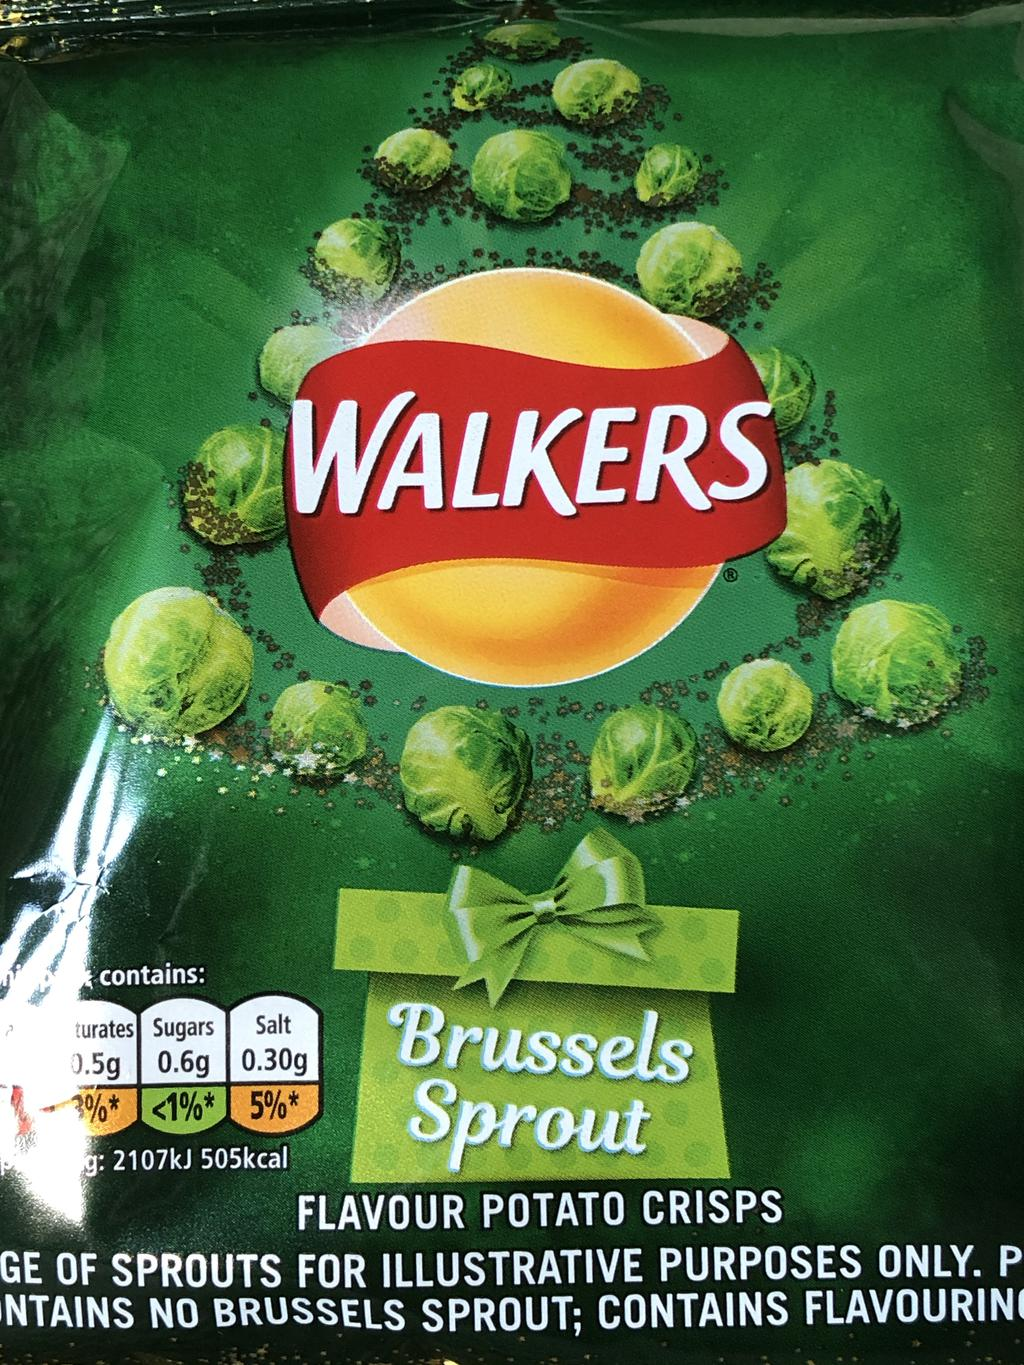 Brussels Sprout crisps